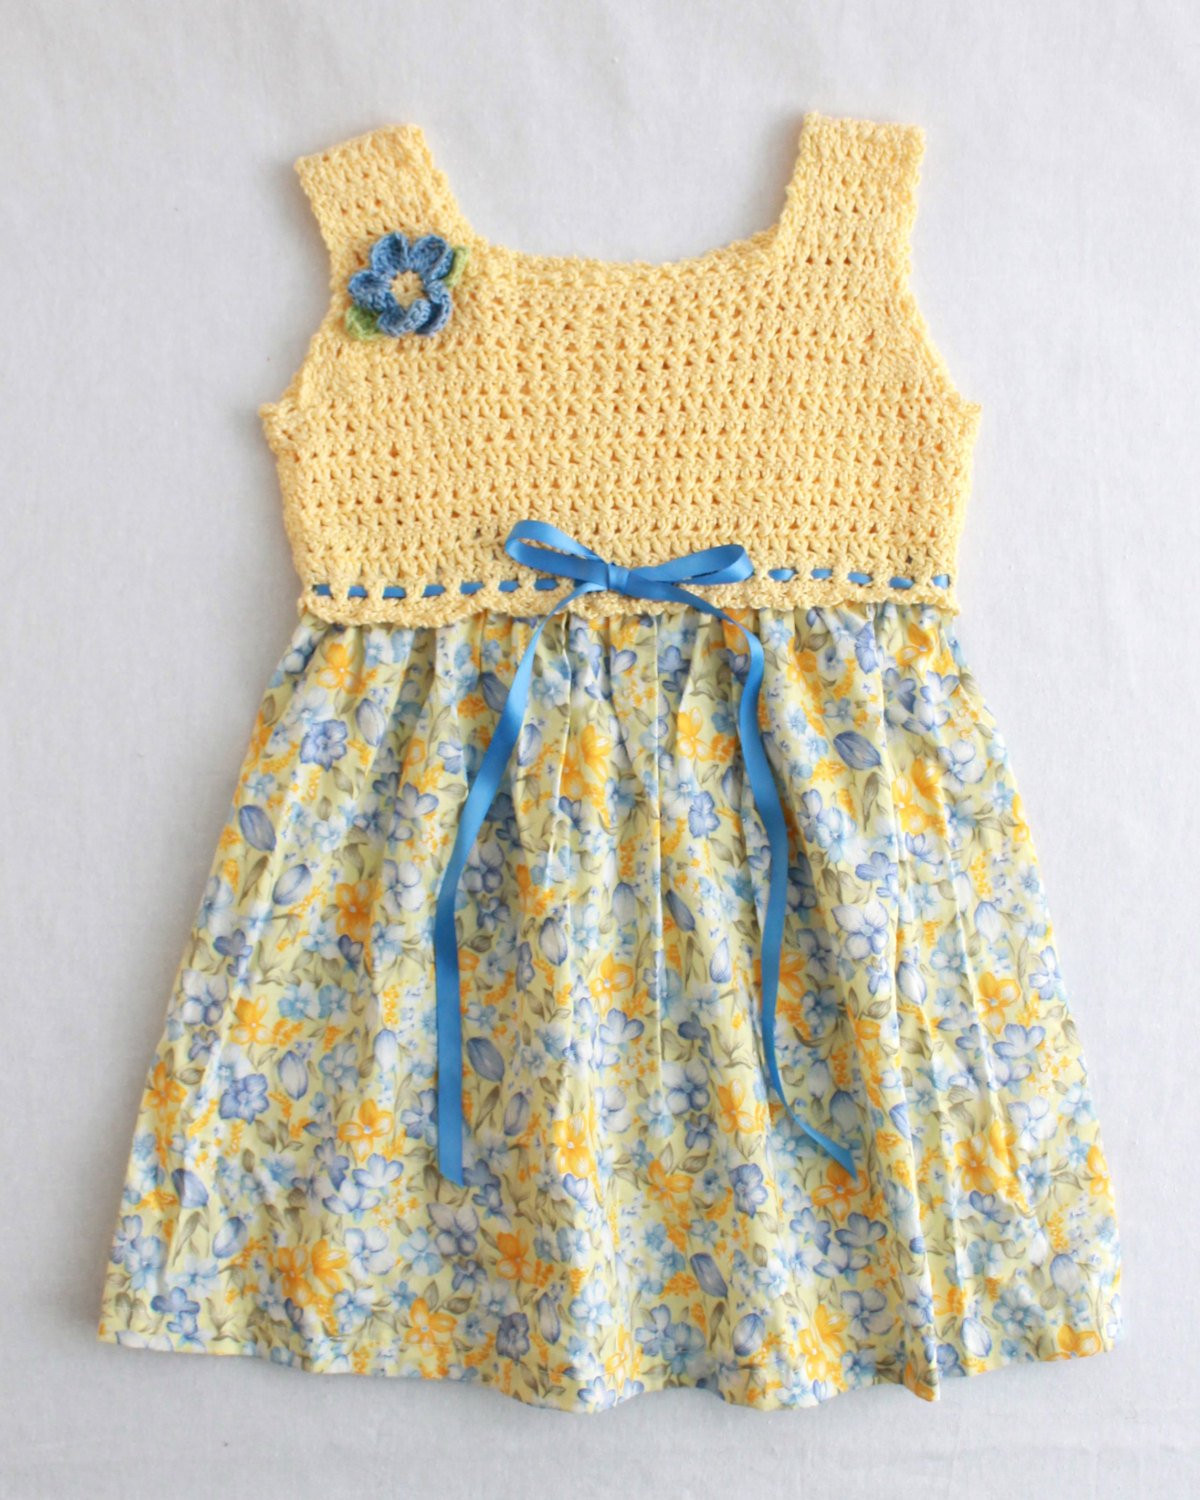 Crochet Sundress Elegant Cross Stitch Sundress Crochet Pattern Pdf Of Gorgeous 43 Pictures Crochet Sundress